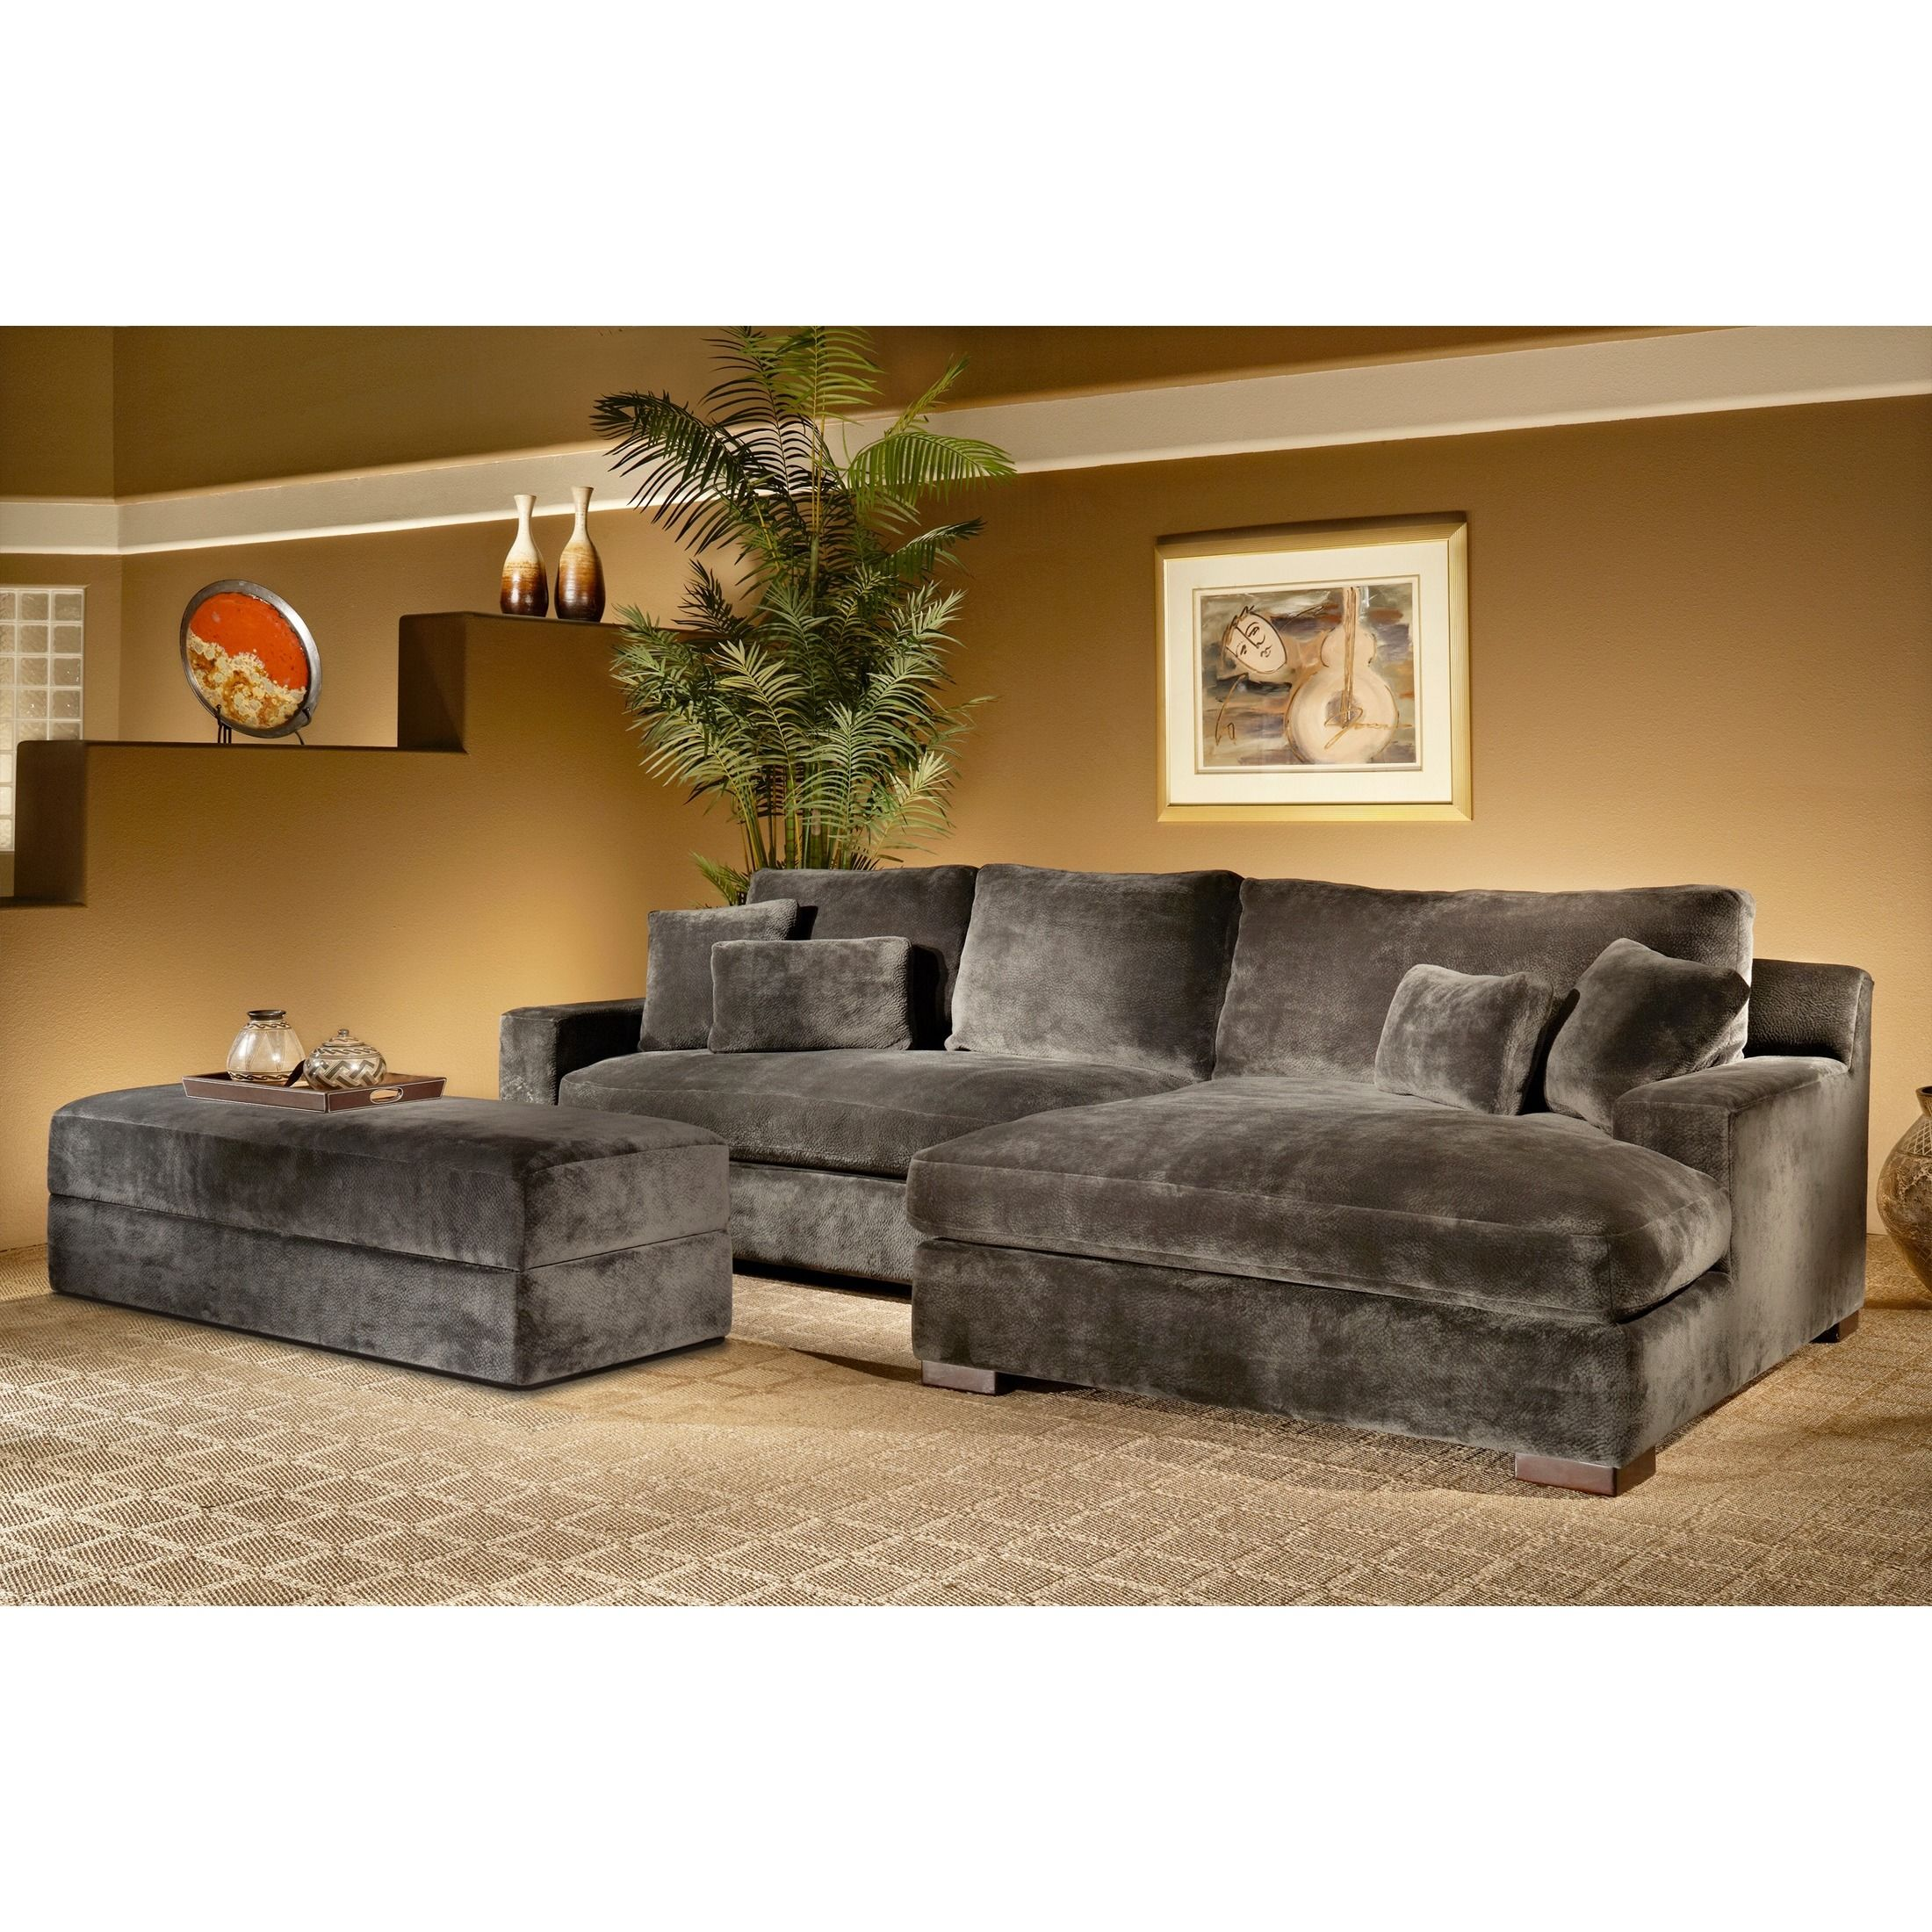 Chaise Sofa The Doris piece Smoke Sectional Sofa with Storage Ottoman is covered in a super